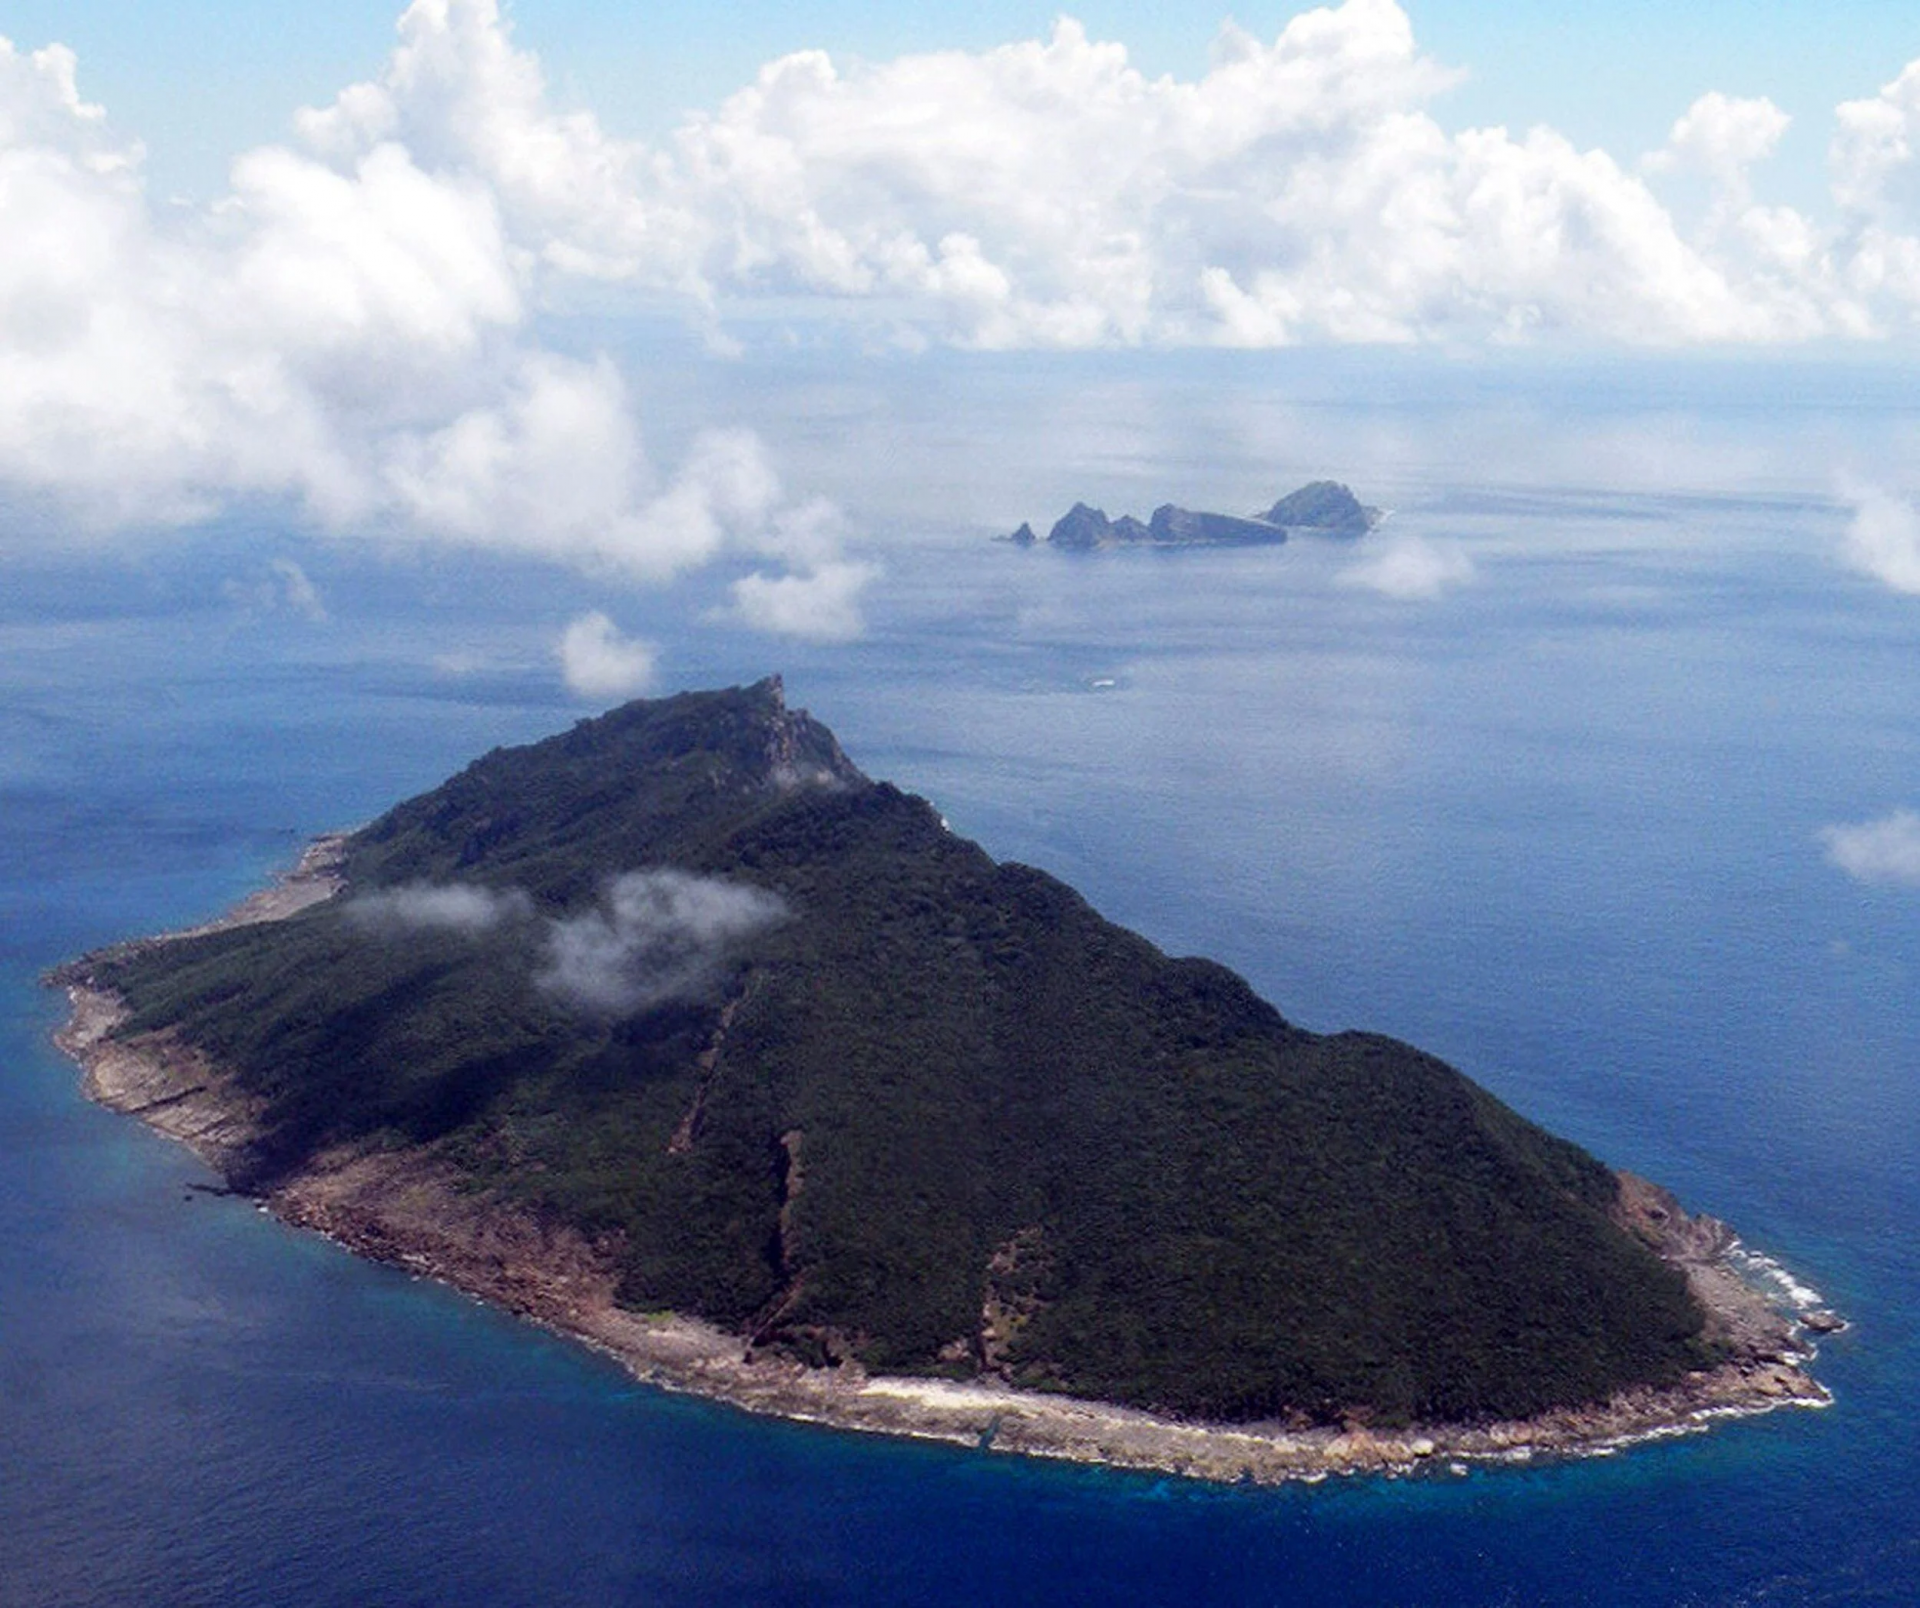 east china sea japan asks to take down digital museum on disputed island